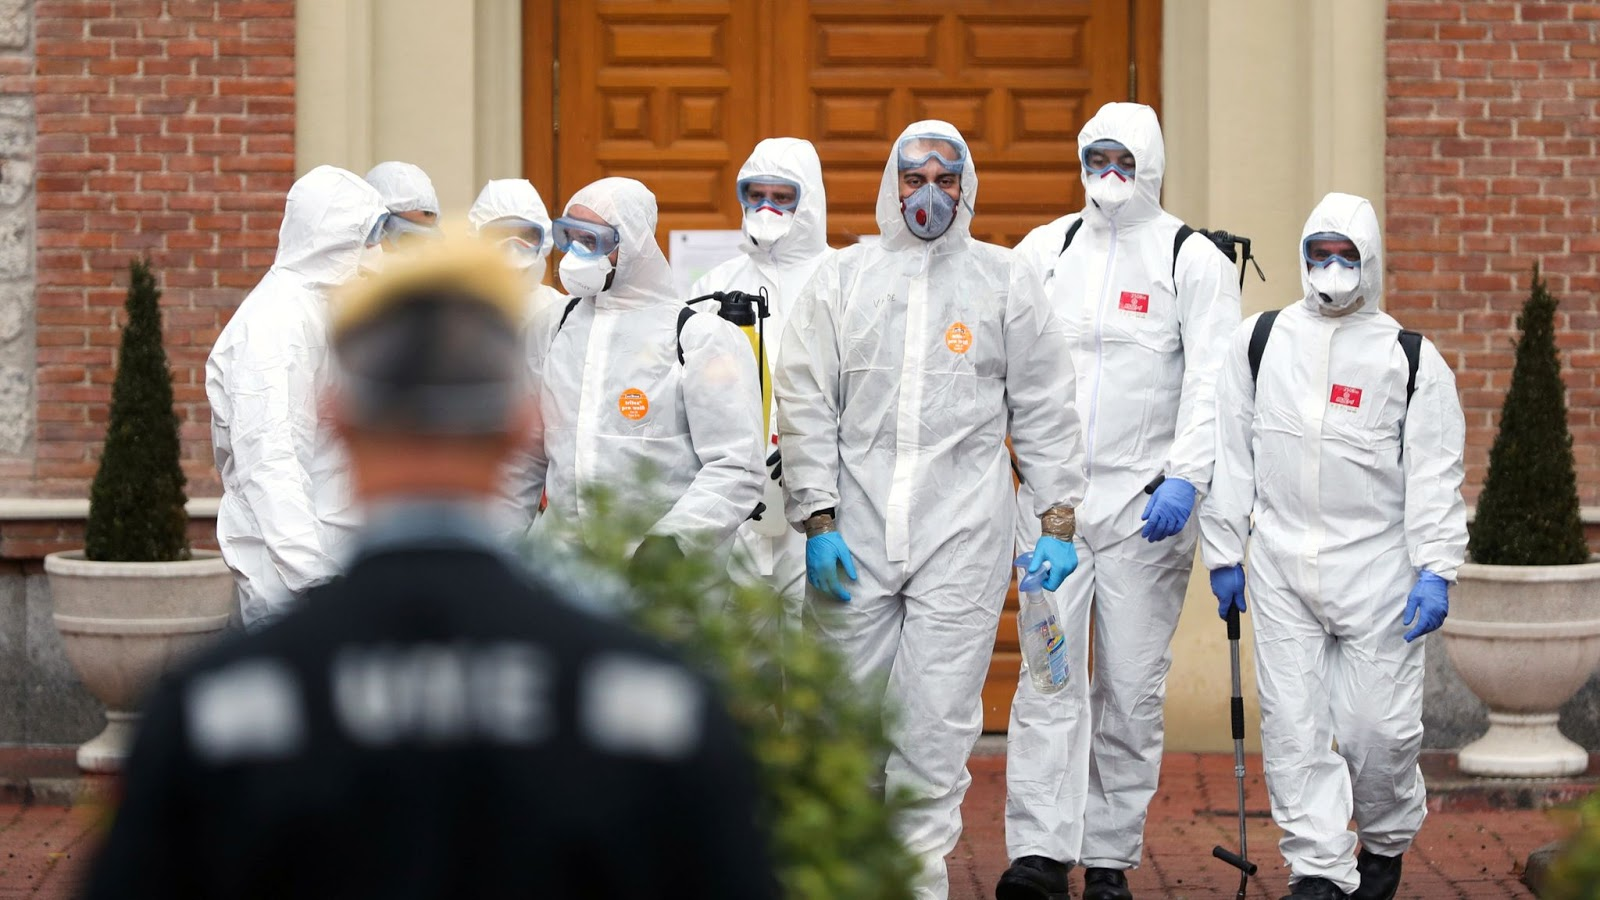 Members of the Military Emergency Unit leave an elderly home in Madrid after carrying out disinfection procedures